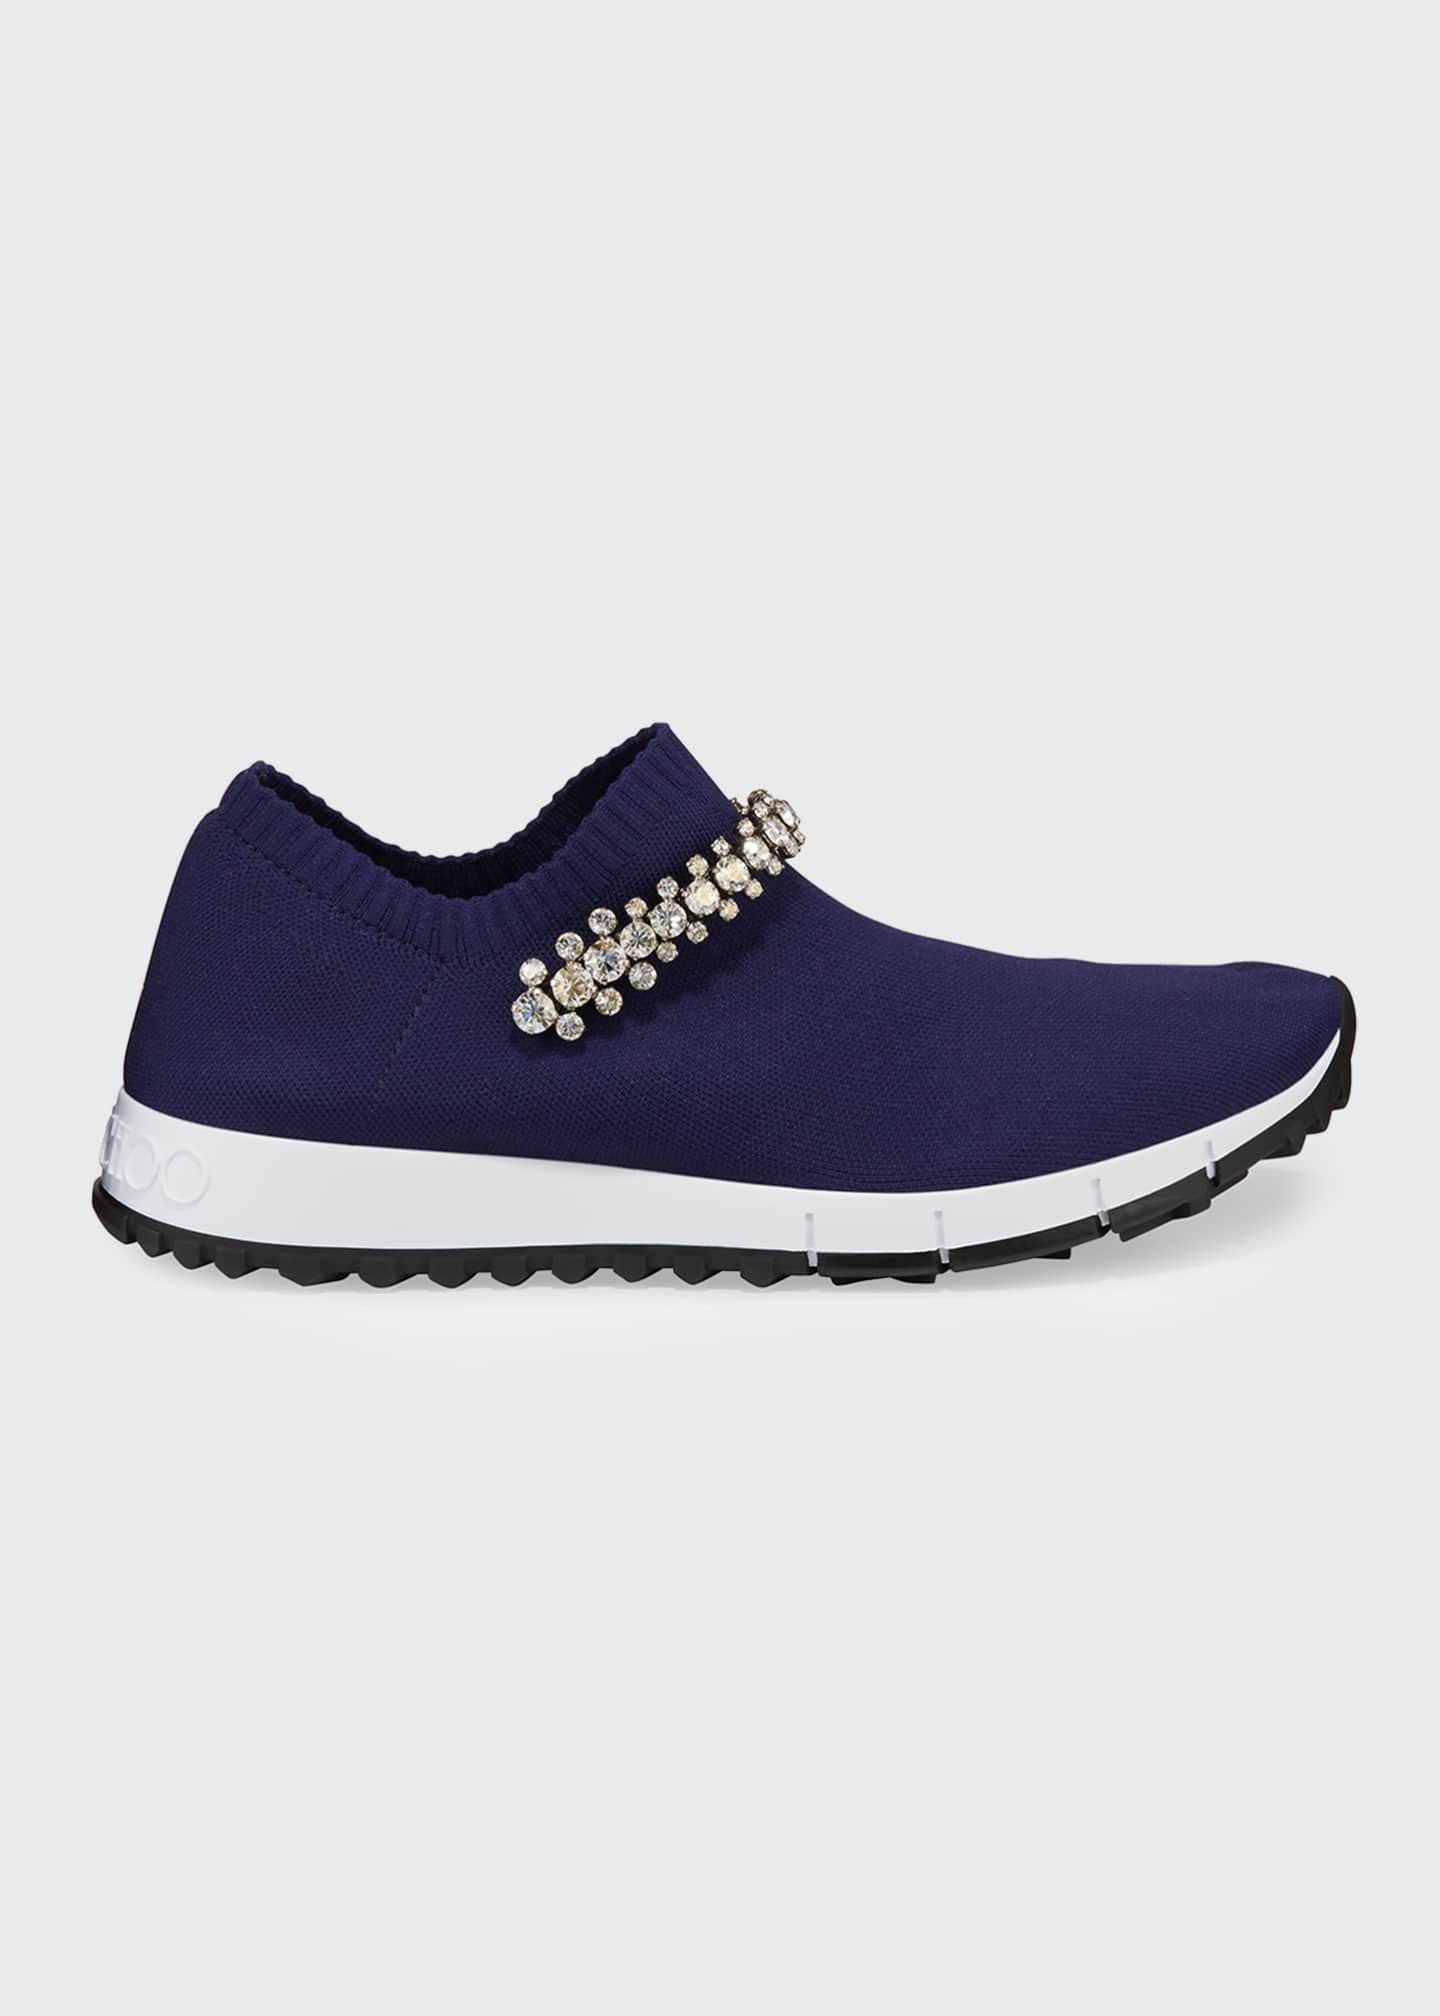 Image 1 of 5: Verona Knit Crystal-Strap Sneakers